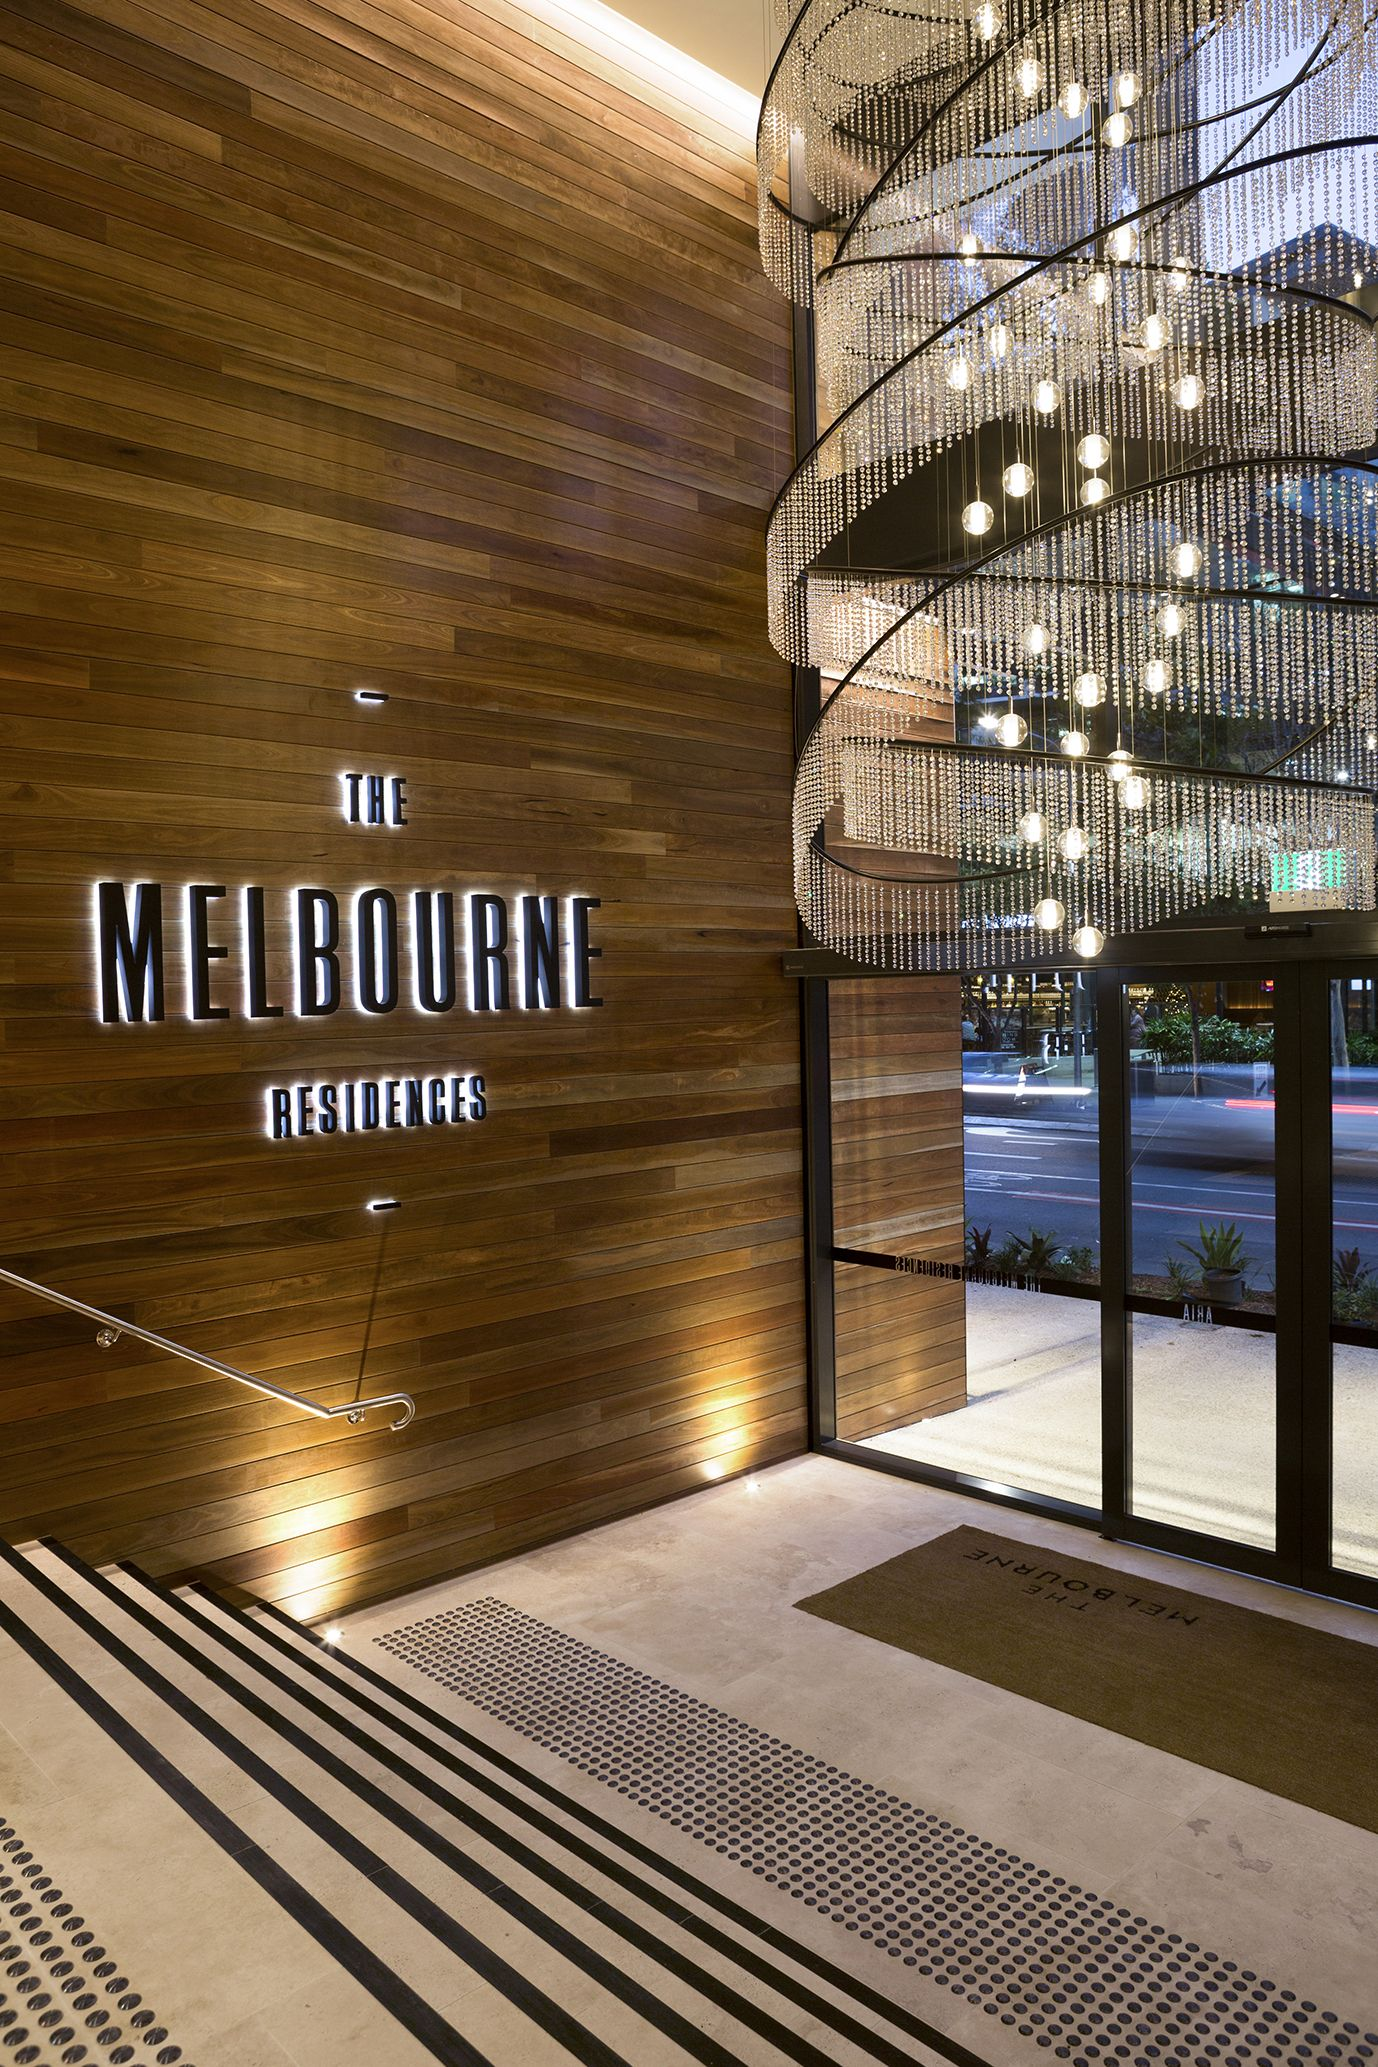 Project The Melbourne Residences Location South Brisbane